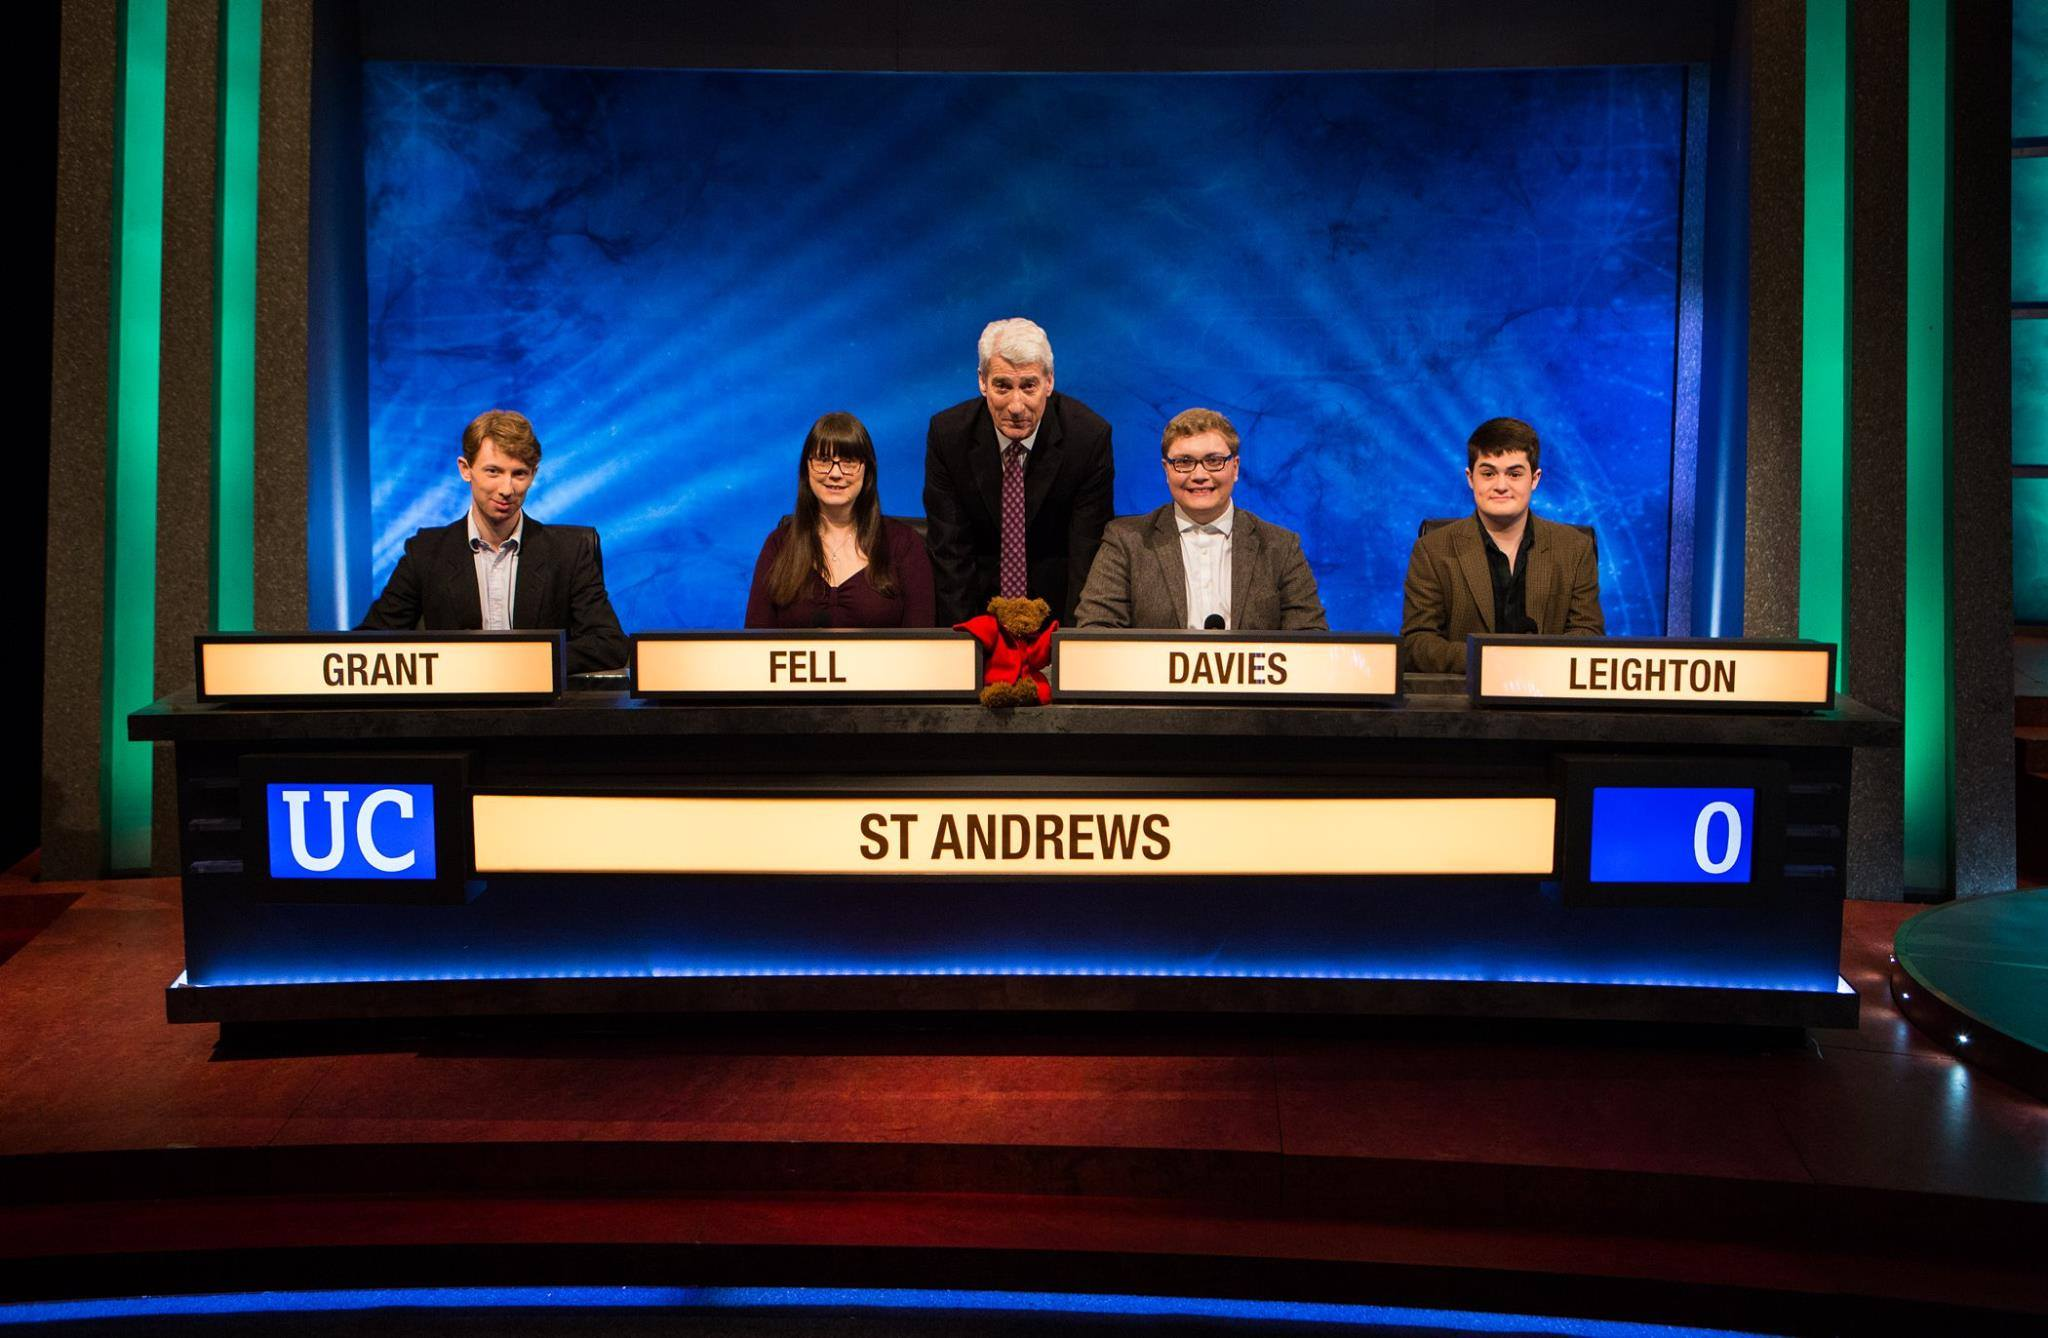 Euan Grant, (Pastoral Assistant 2013-14) went on to return to theological study at St Andrews University, and appeared on this year's University Challenge!